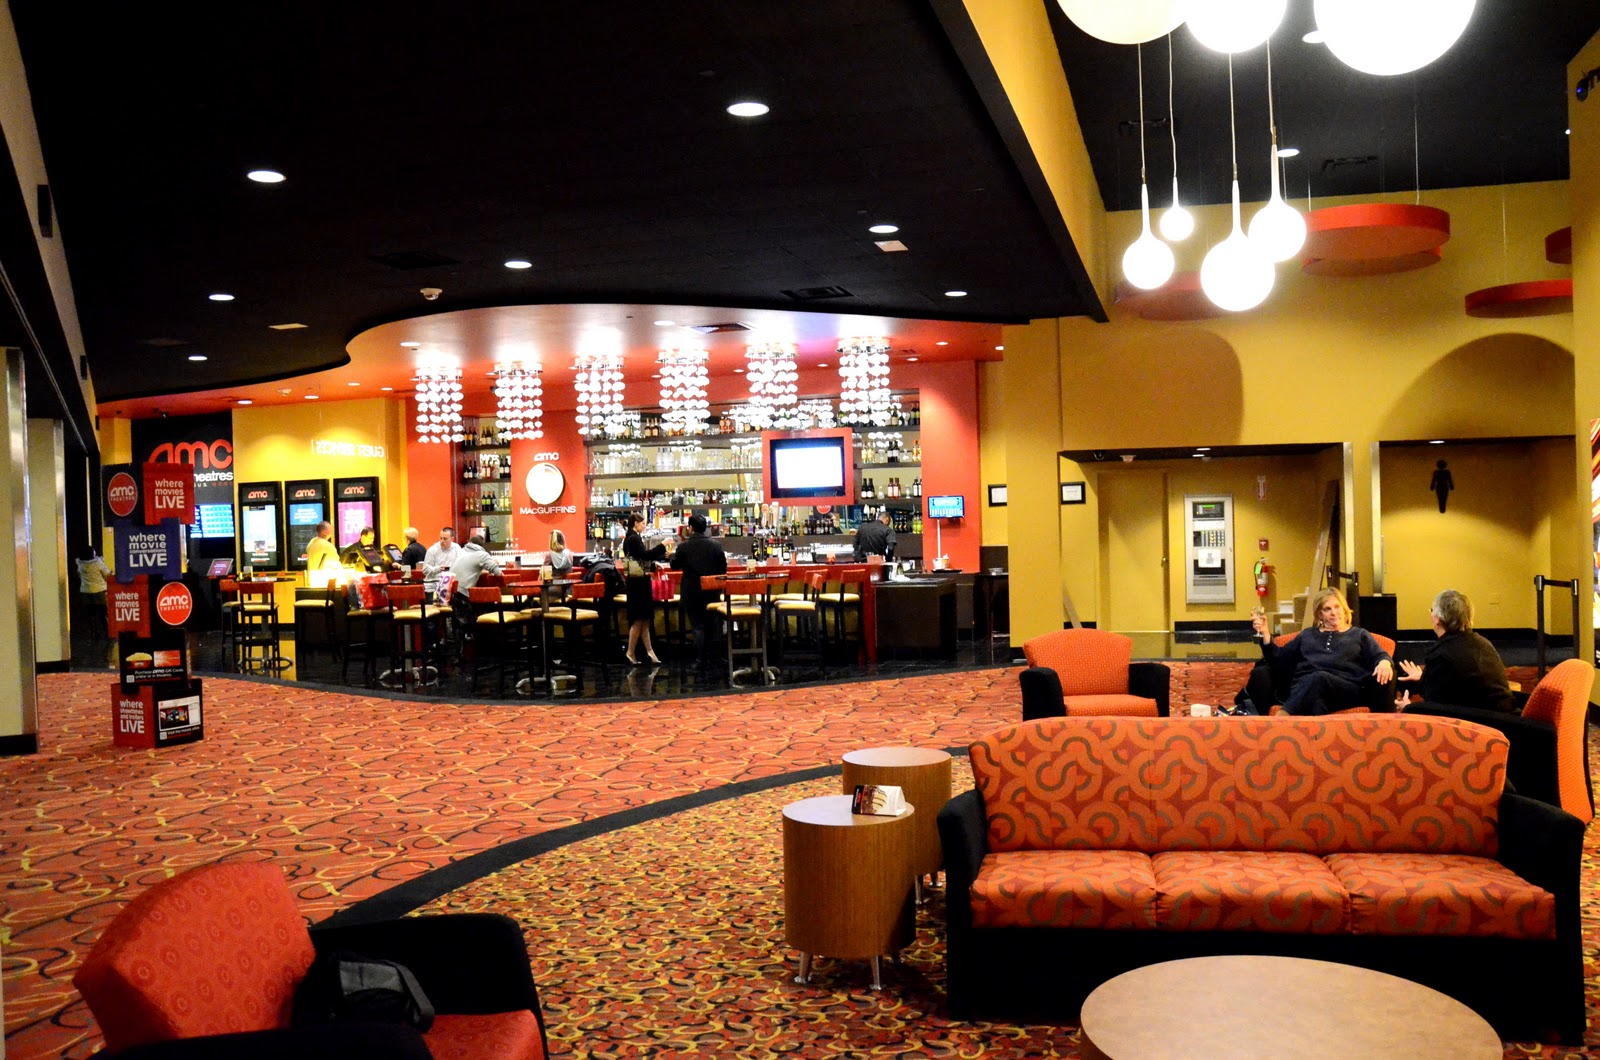 Amc Dine In Theatres As I Mentioned In The Last Blog Post In Which